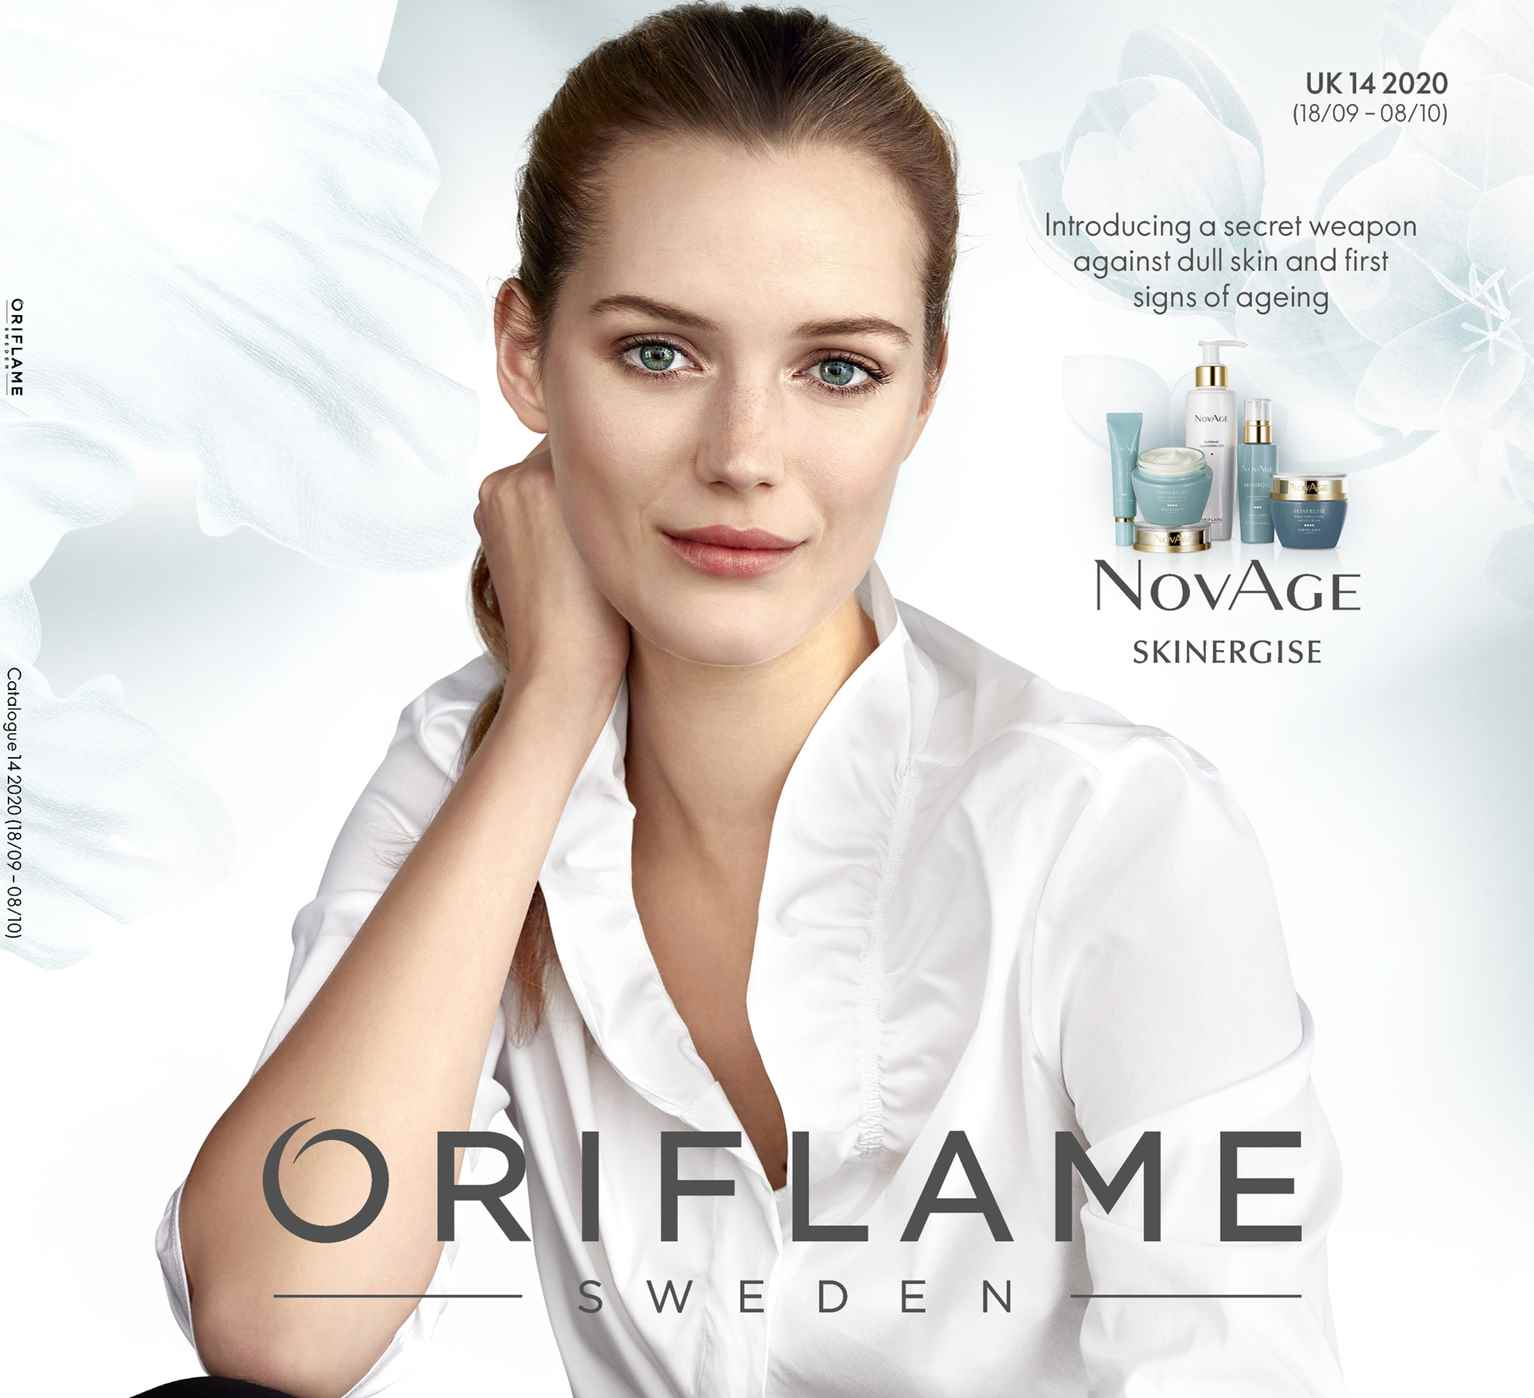 oriflame catalogue 14 2020